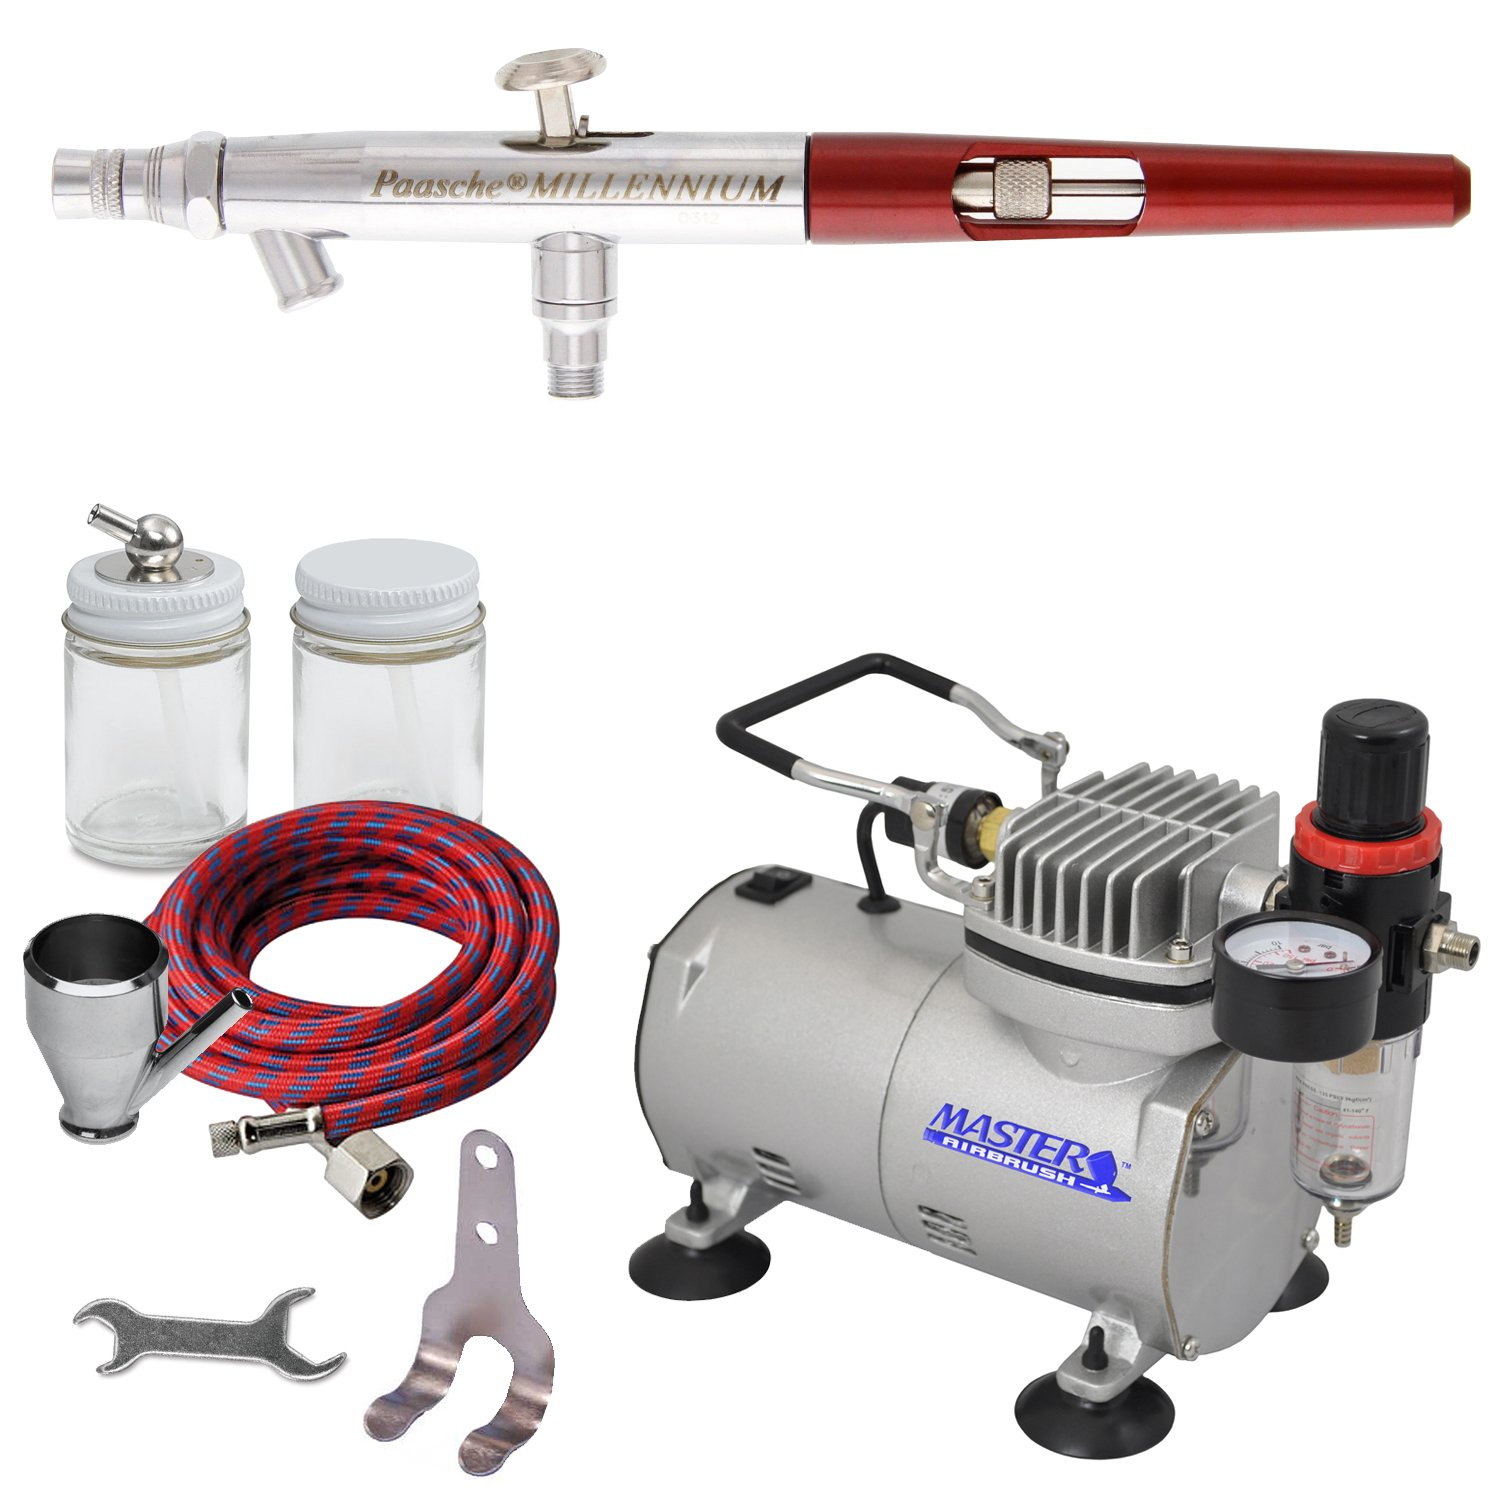 PAASCHE MILLENNIUM AIRBRUSH SET w/Quiet AIR COMPRESSOR